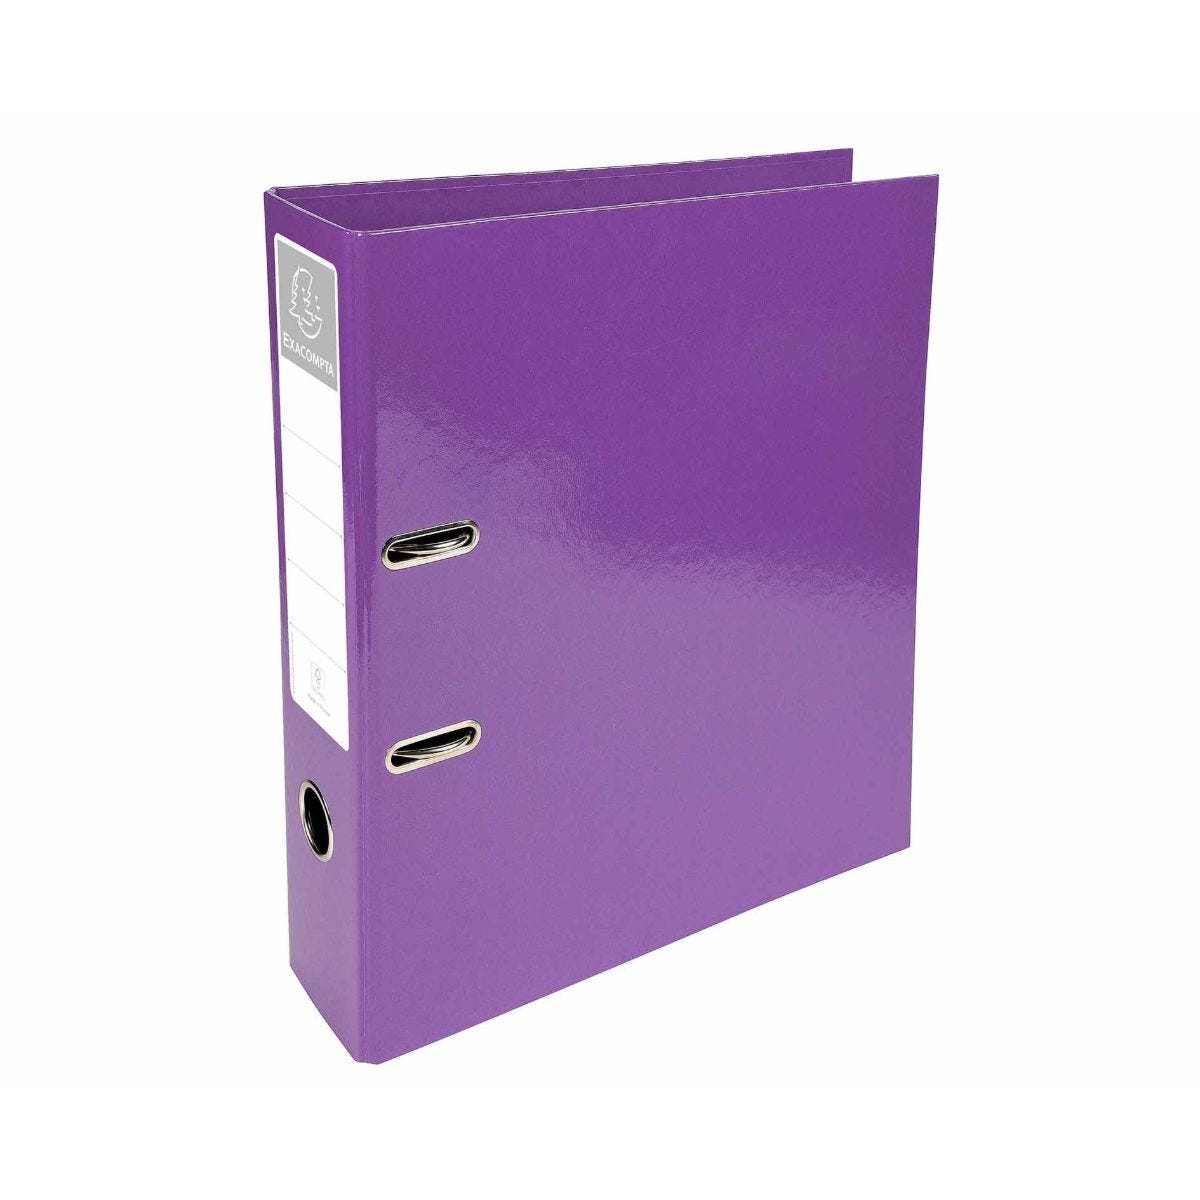 Exacompta Iderama PremTouch Lever Arch File A4 70mm Pack of 10 Purple